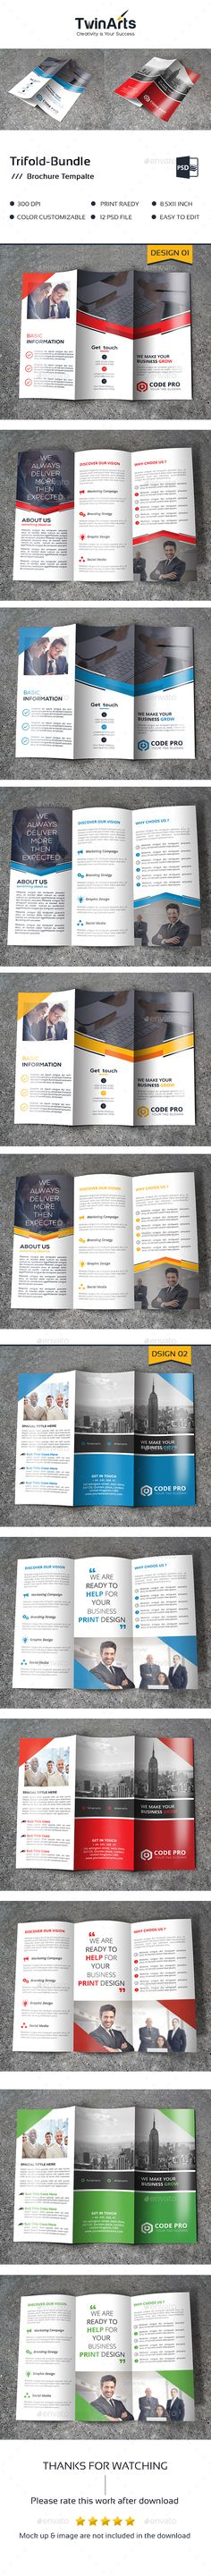 Trifold Brochure Template PSD Bundle. Download here: https://graphicriver.net/item/trifold-bundle_2-in-1/17467847?ref=ksioks